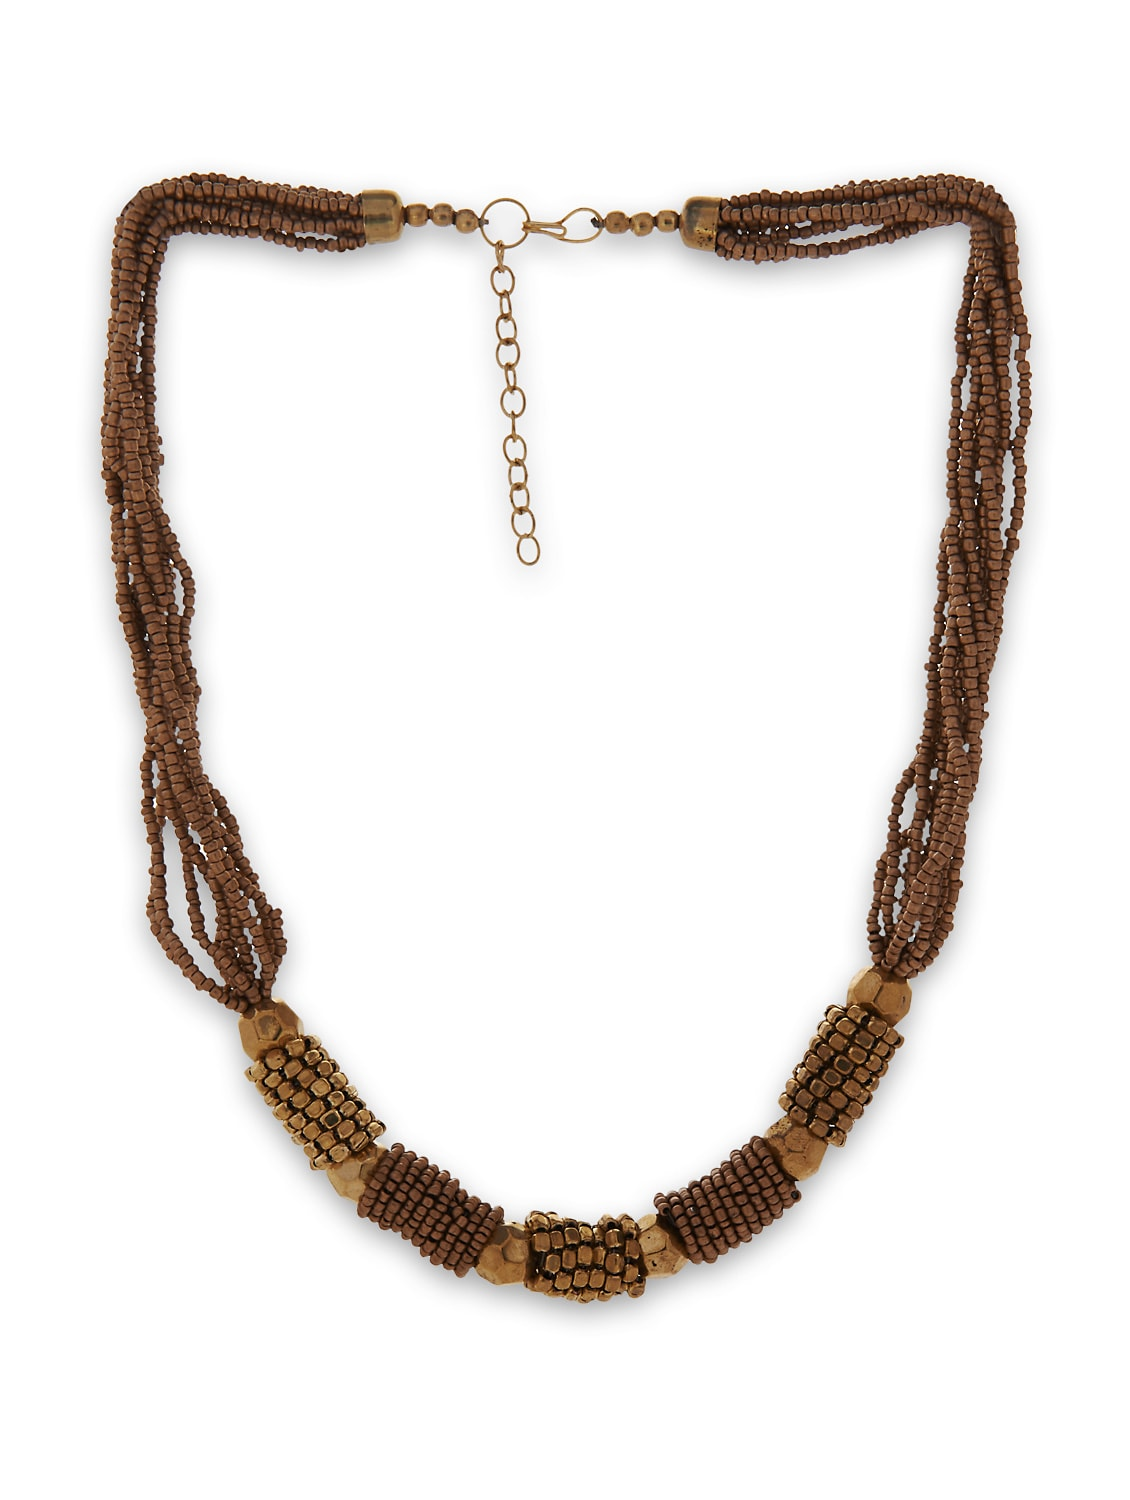 Gold Bead Necklace - Accessory Bug